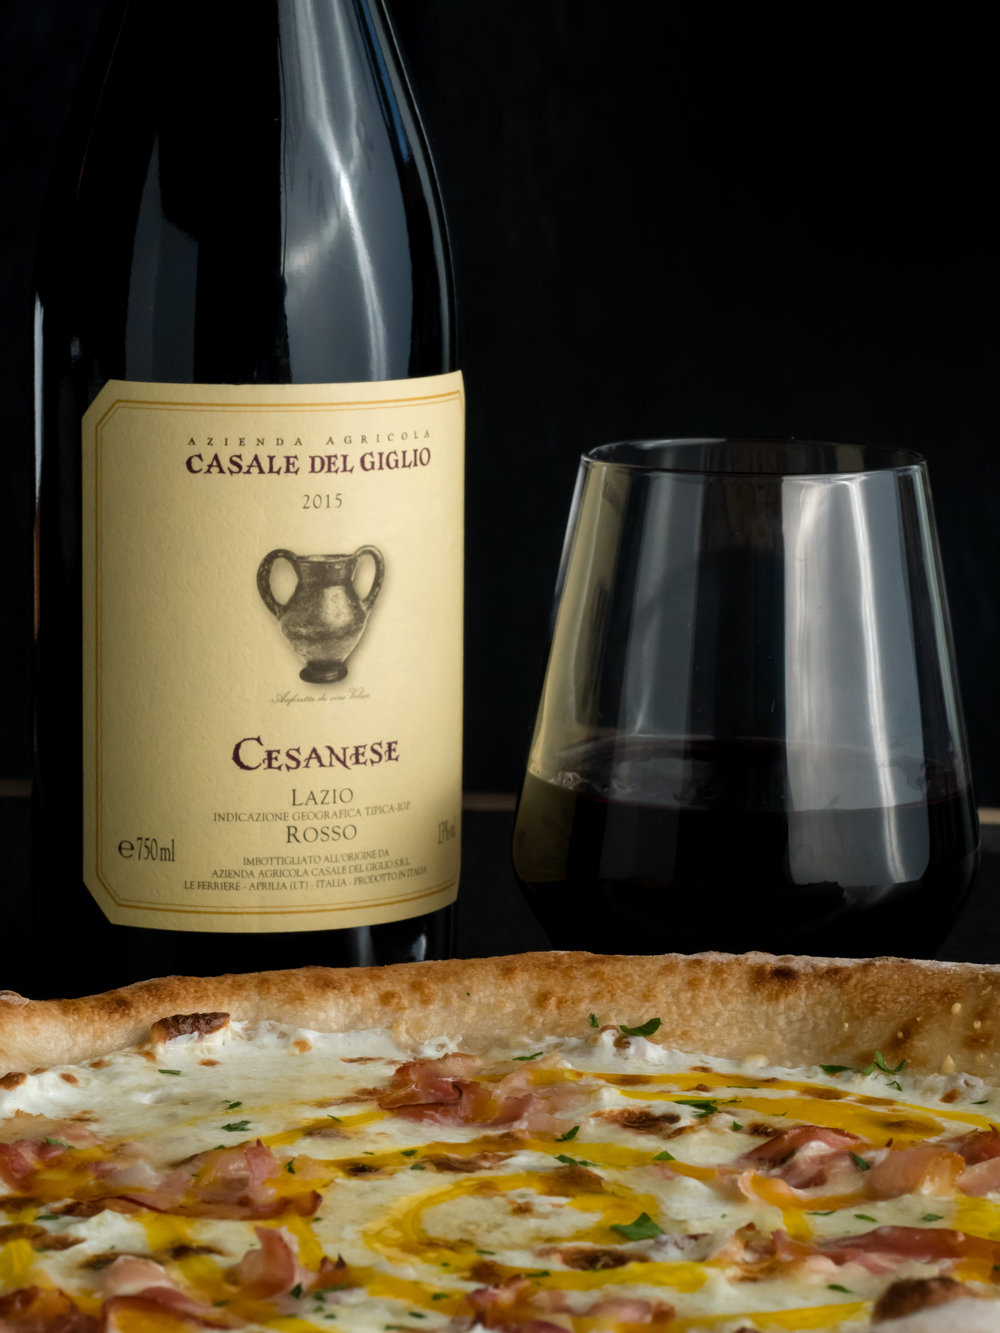 Musings by the Glass - Pizza and Wine Pairing Expansion - Carbonara Pizza and Cesanare Wine at Brick Fire Tavern in Honolulu